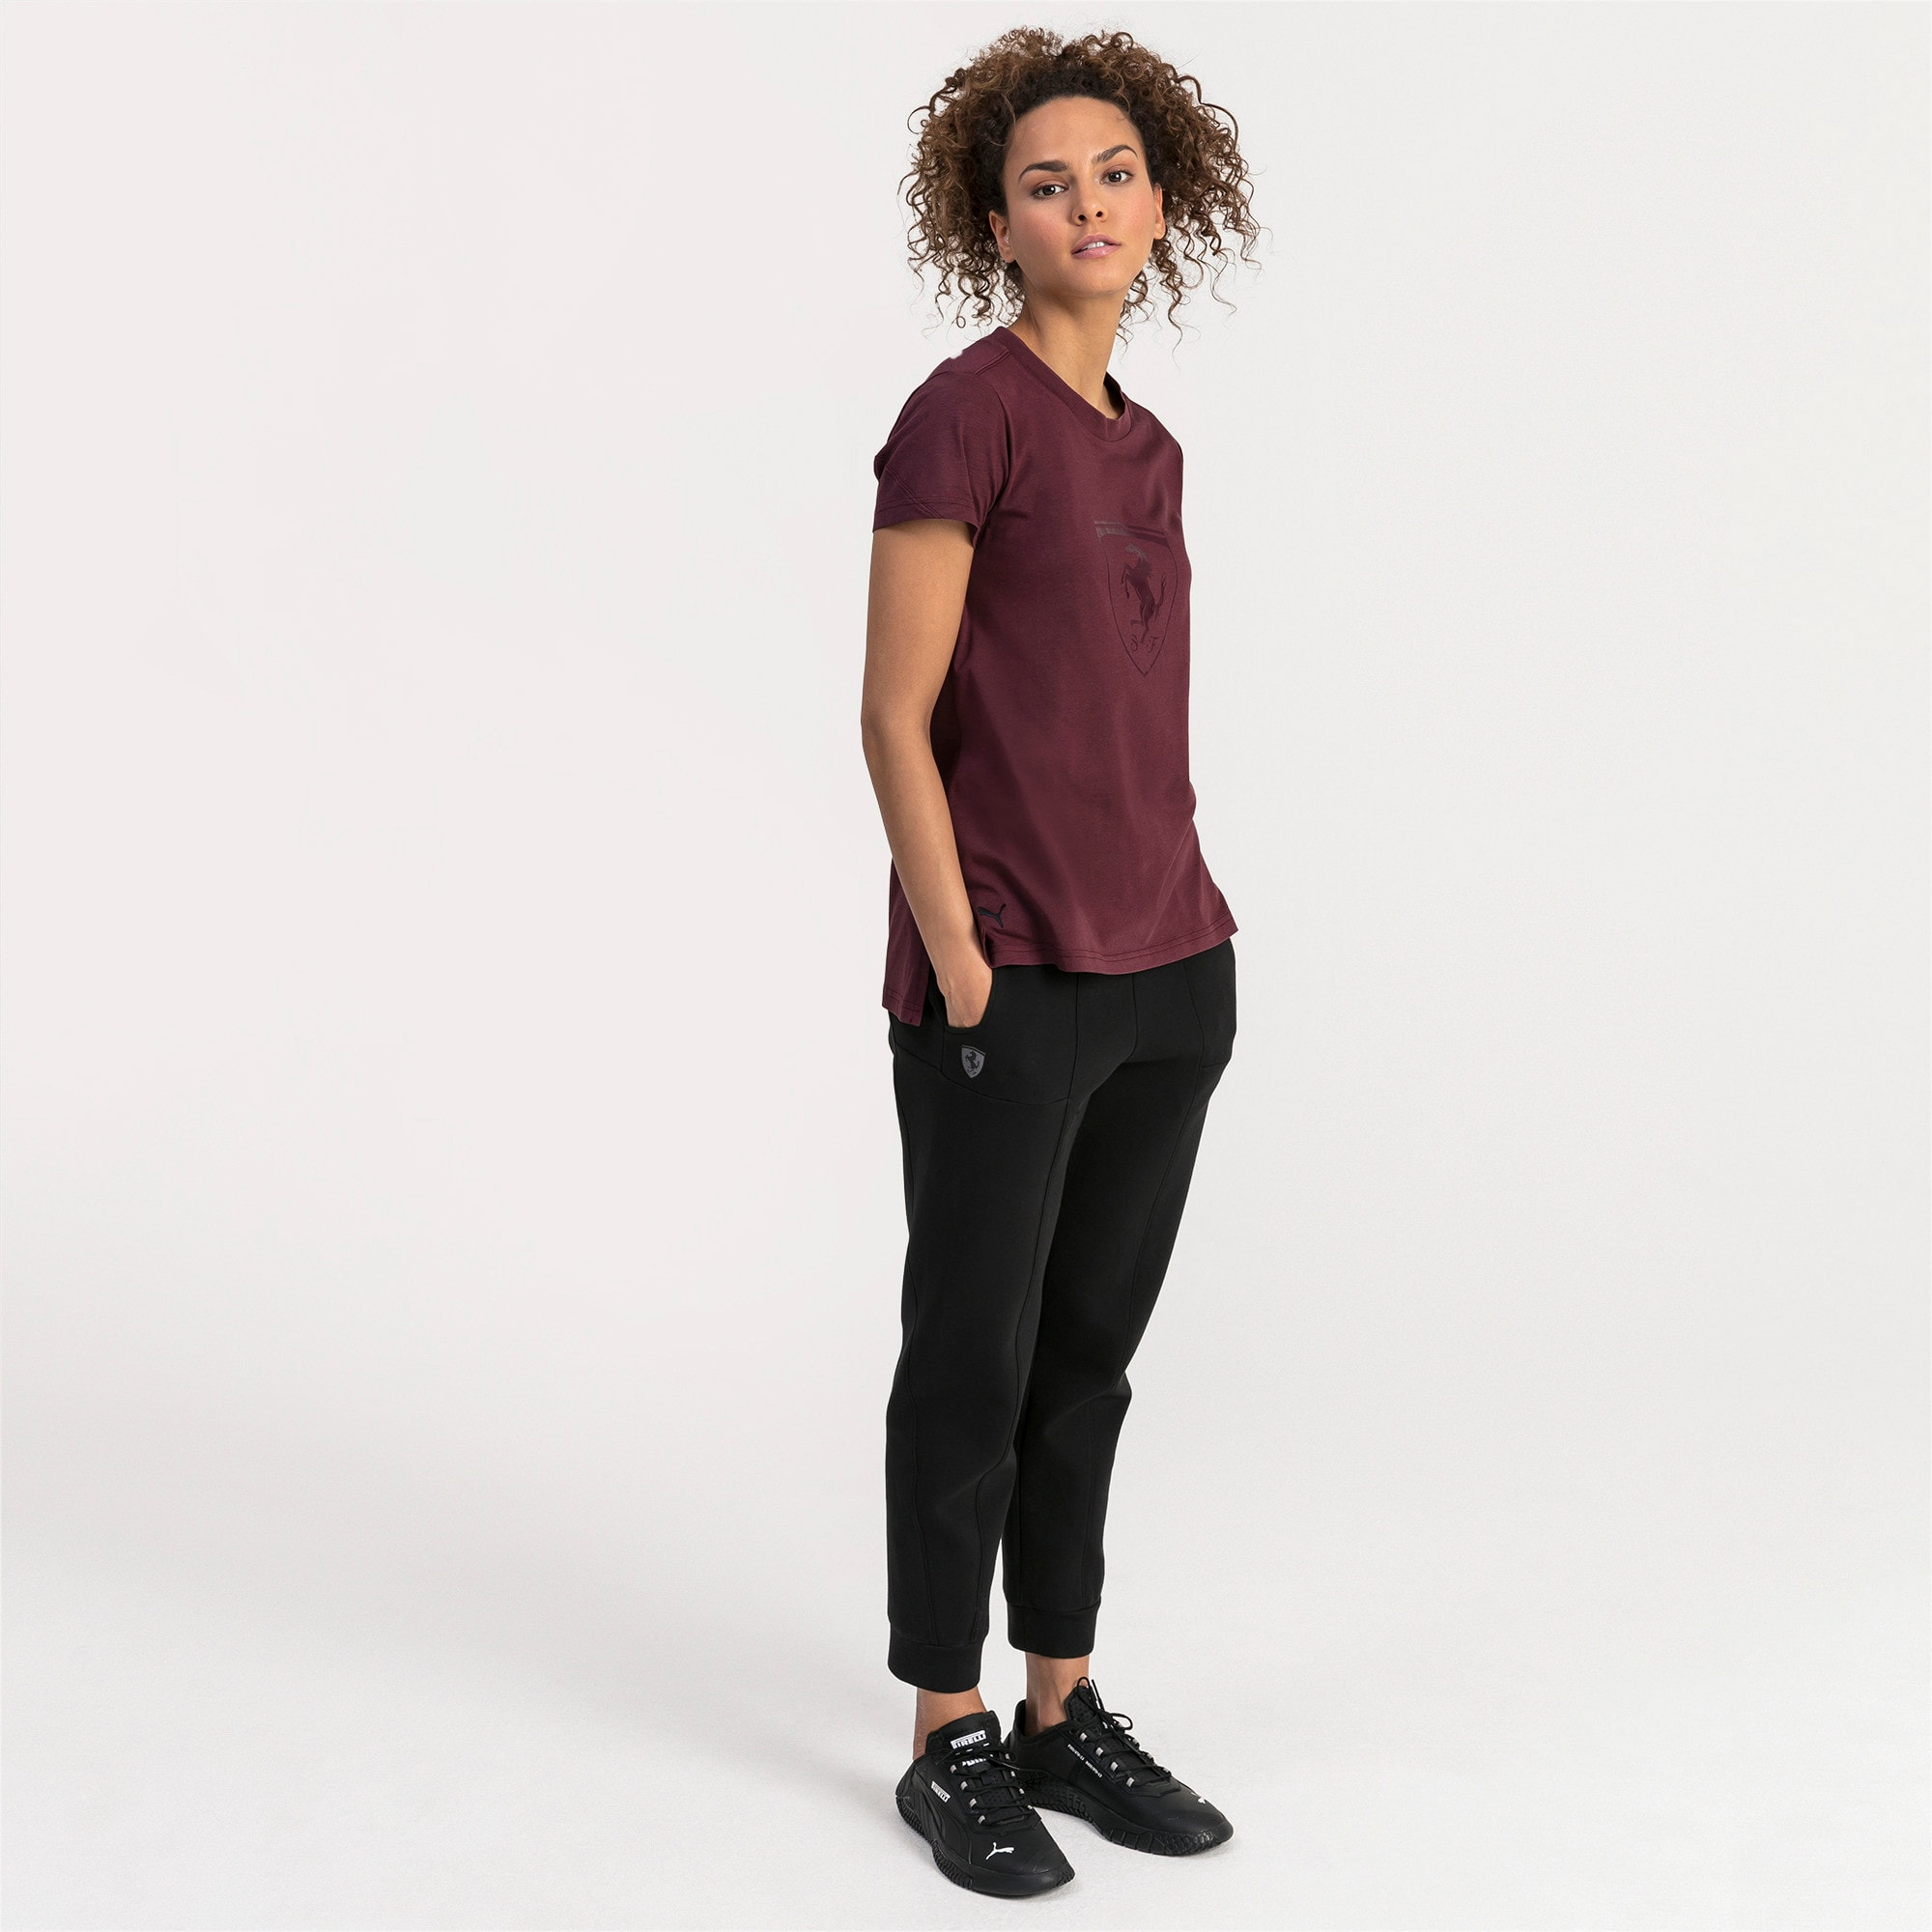 Thumbnail 3 of Pantaloni della tuta Ferrari donna, Puma Black, medium